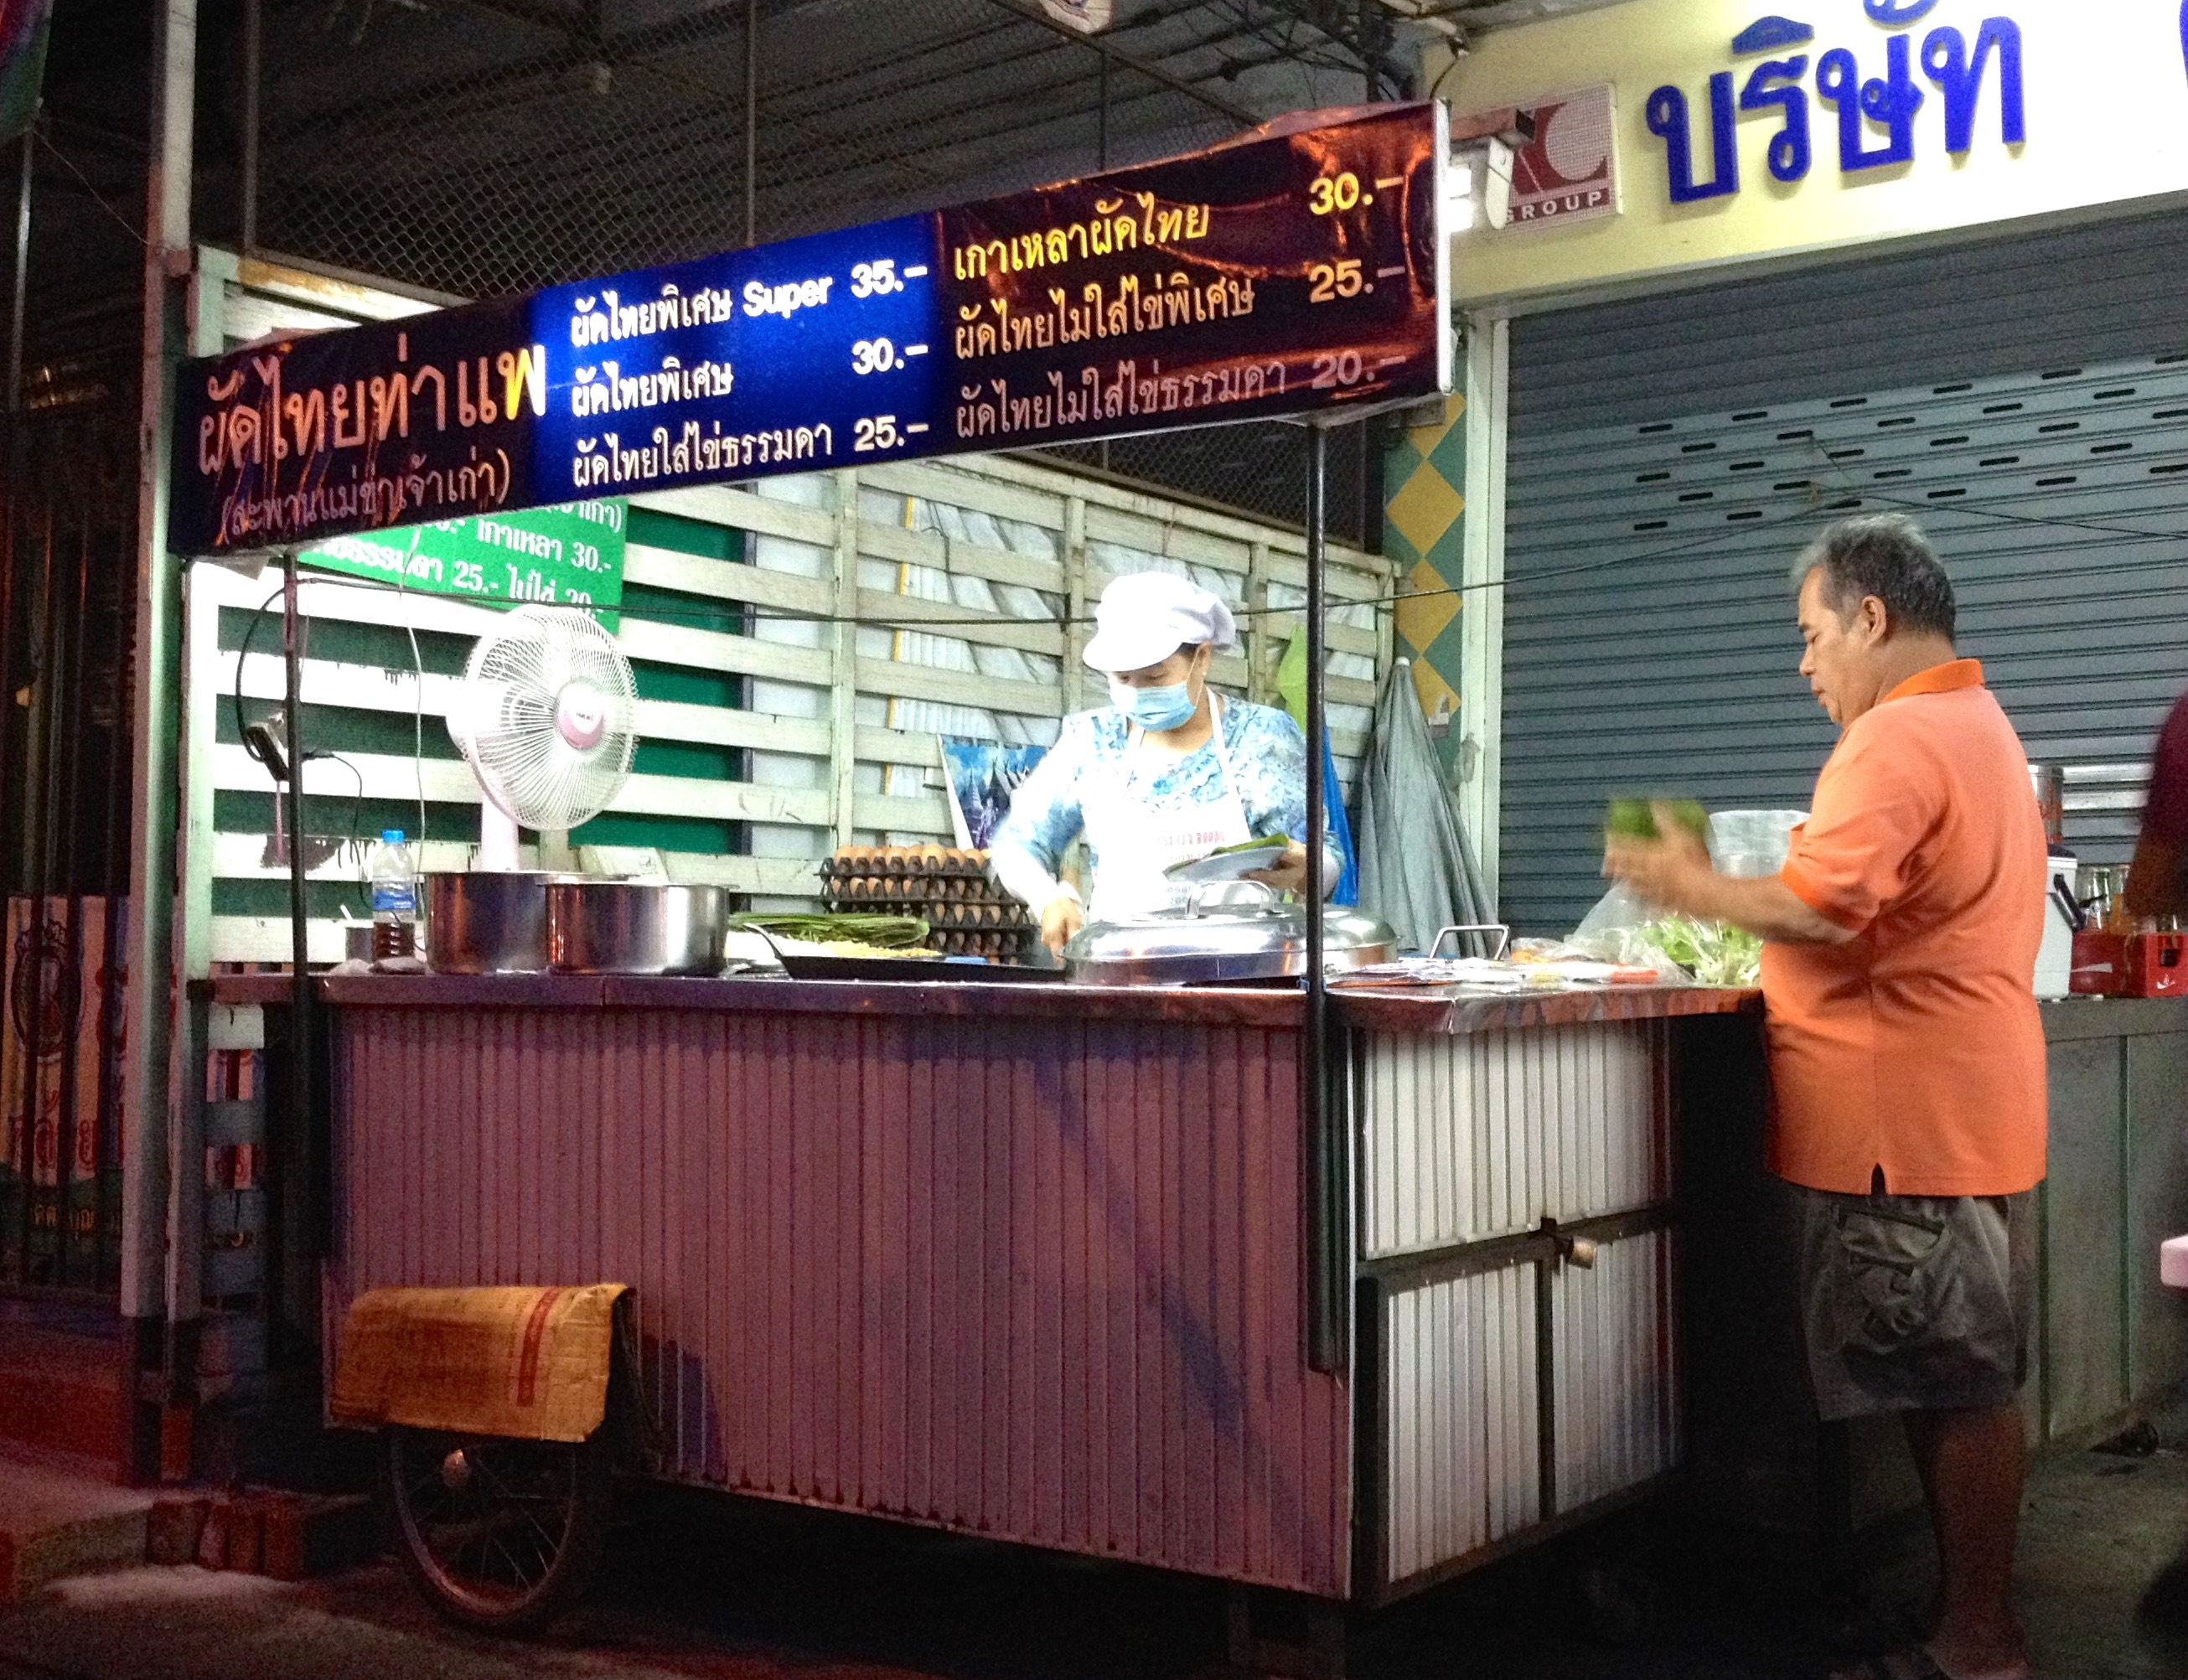 the top reasons to quit your job and move abroad communication 101 if the signs are all in thai but the food looks good